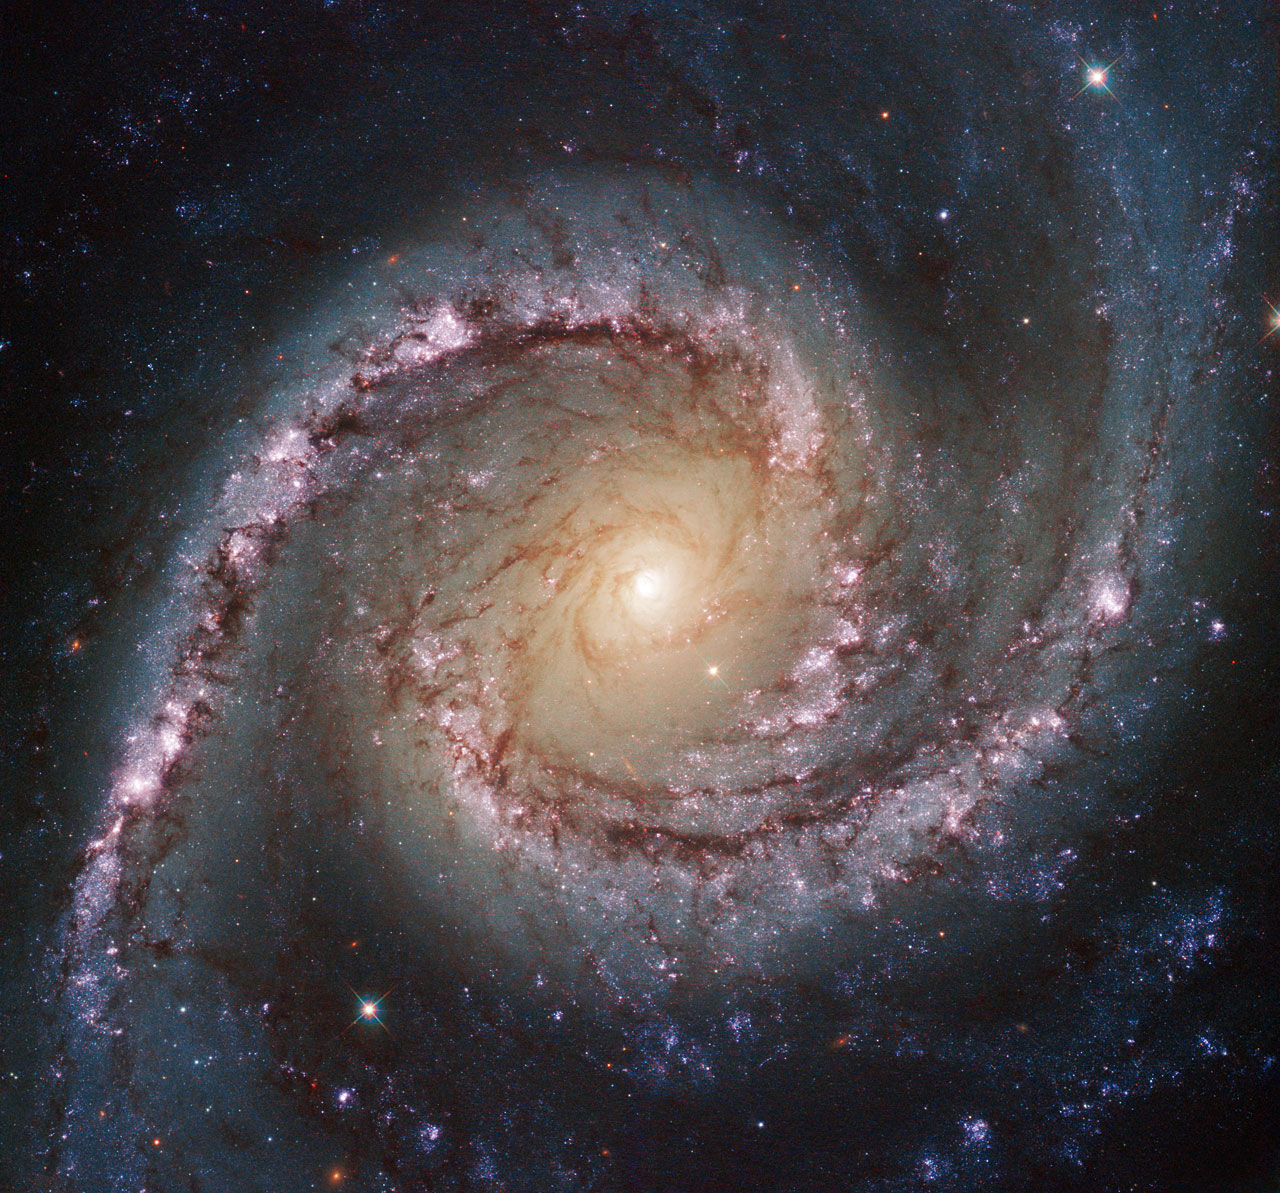 This new Hubble image shows NGC 1566, a galaxy located approximately 40 million light-years away in the constellation of Dorado. This image was taken by Hubble's Wide Field Camera 3 (WFC3) in the near-infrared part of the spectrum.